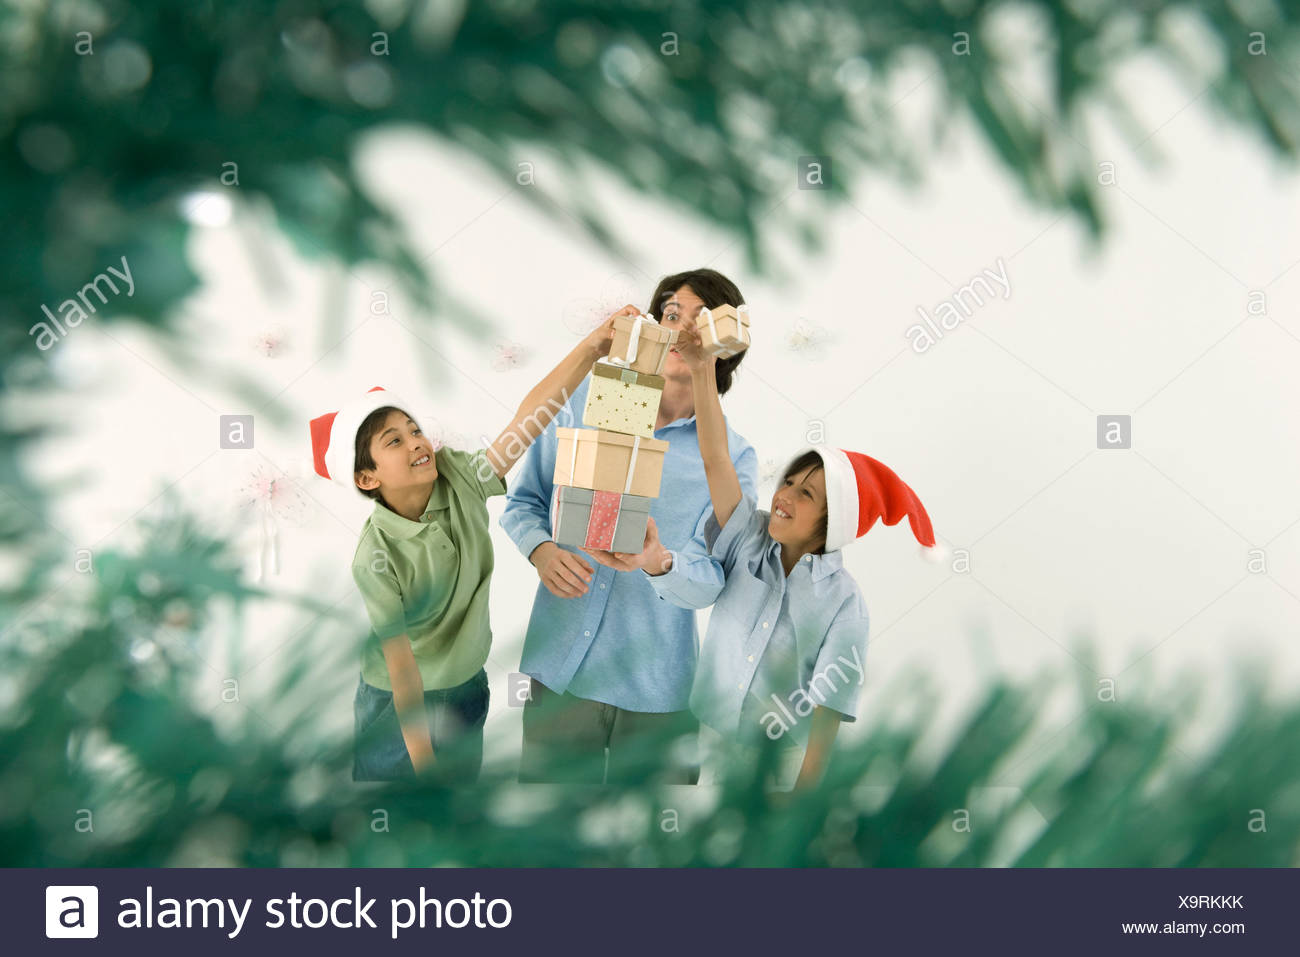 Young man holding tall stack of Christmas gifts, boys placing more ...